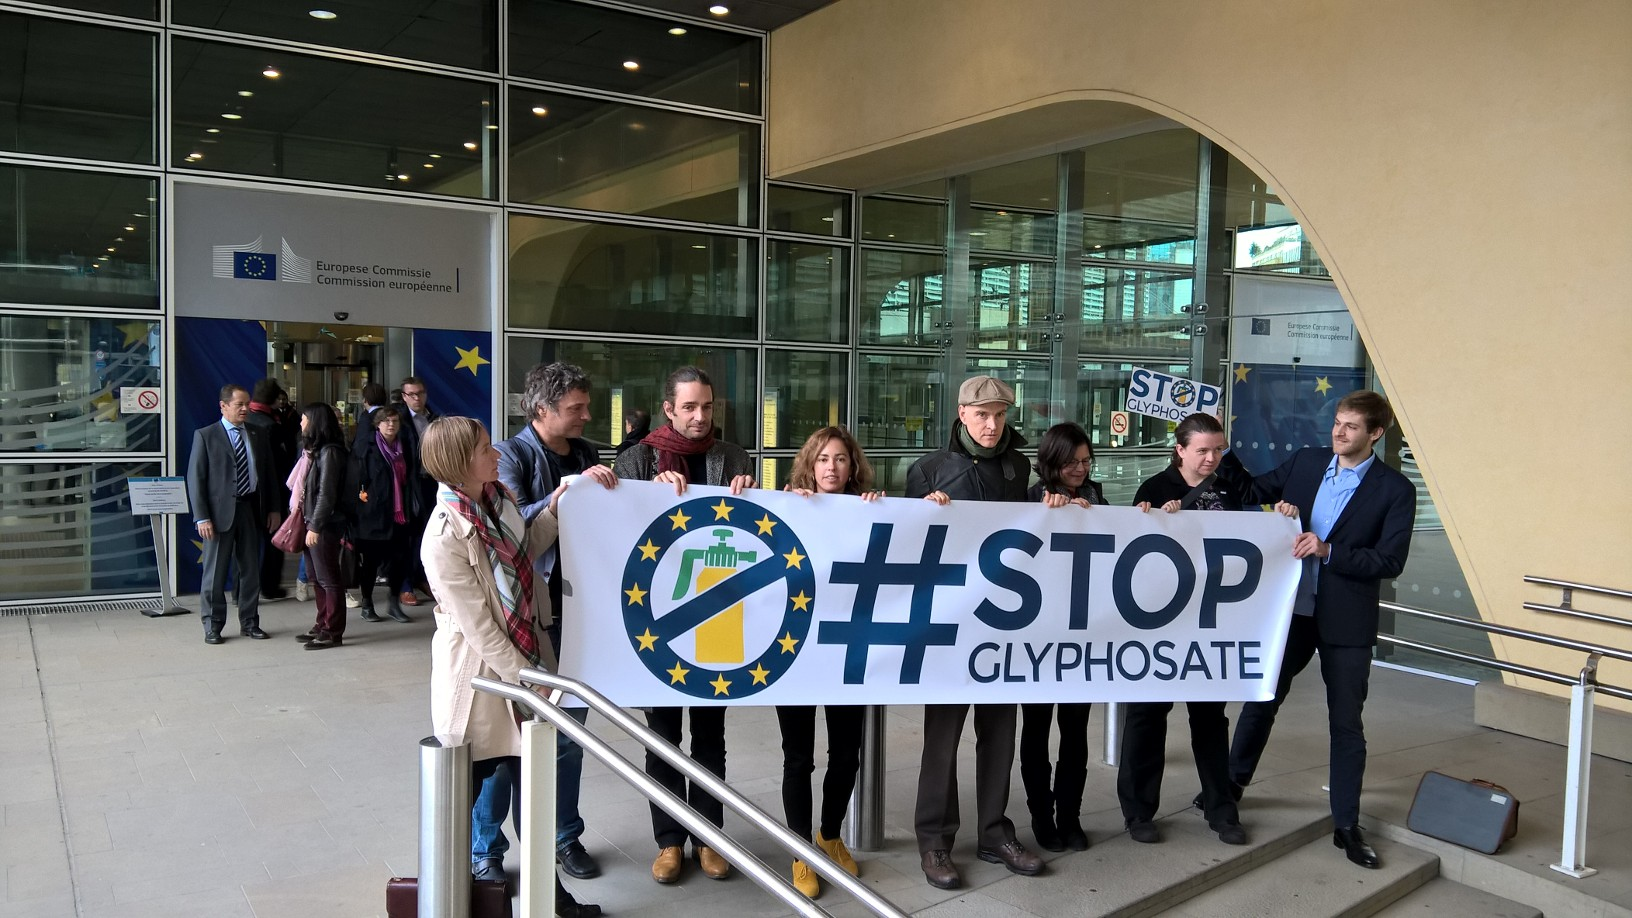 European Union delays decision on herbicide glyphosate